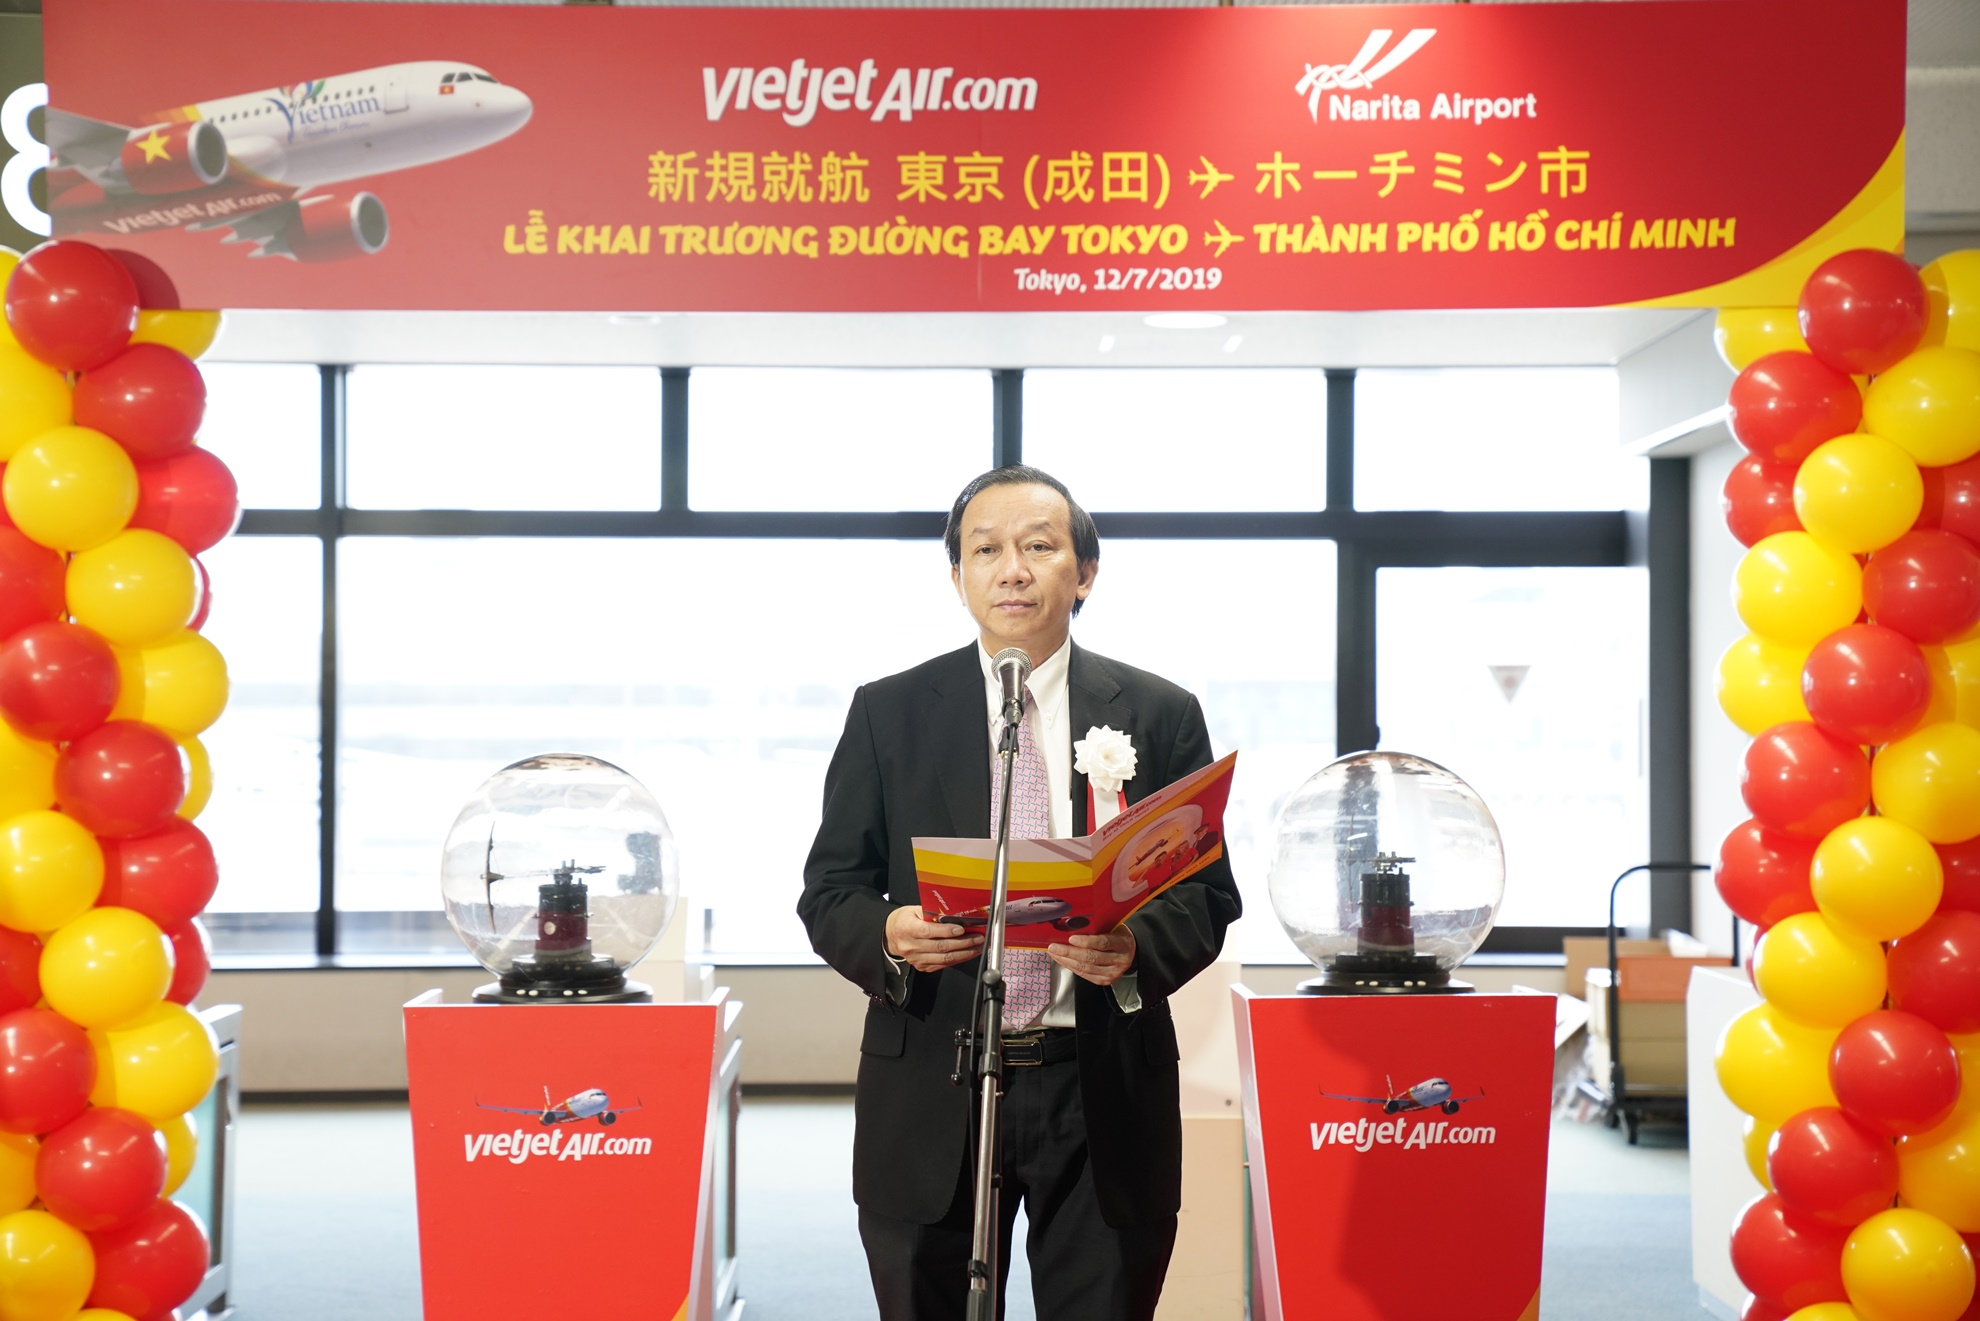 Vietjet's vice president Do Xuan Quang remarks the new route's opening at Narita International Airport, in Tokyo on July 12, 2019. Photo: Vietjet